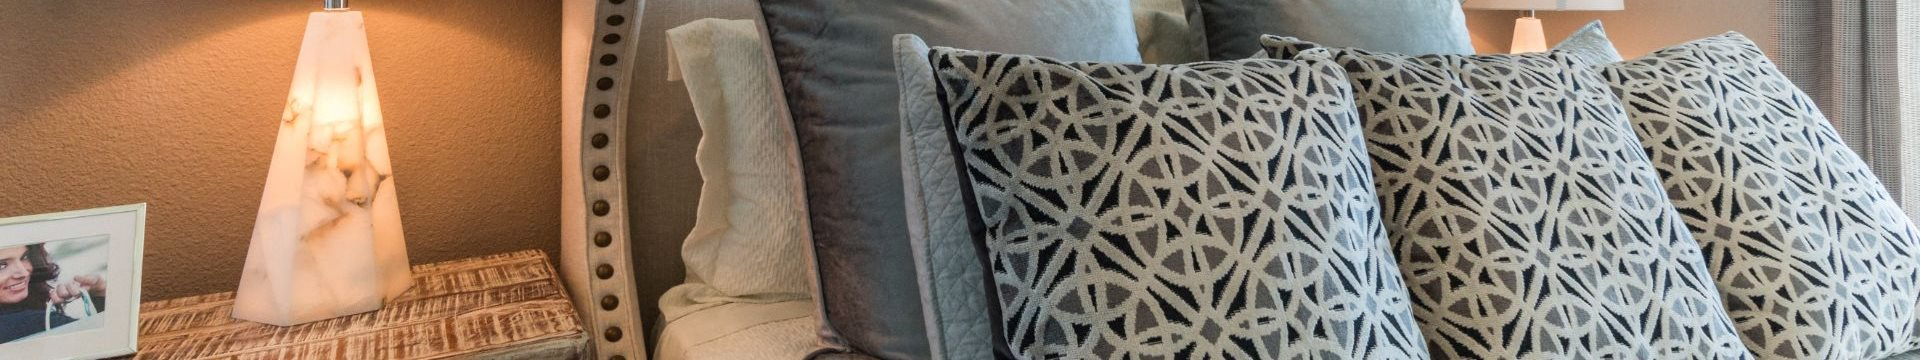 Bed Pillows at Estates at Briggs Ranch, San Antonio, TX, 78245